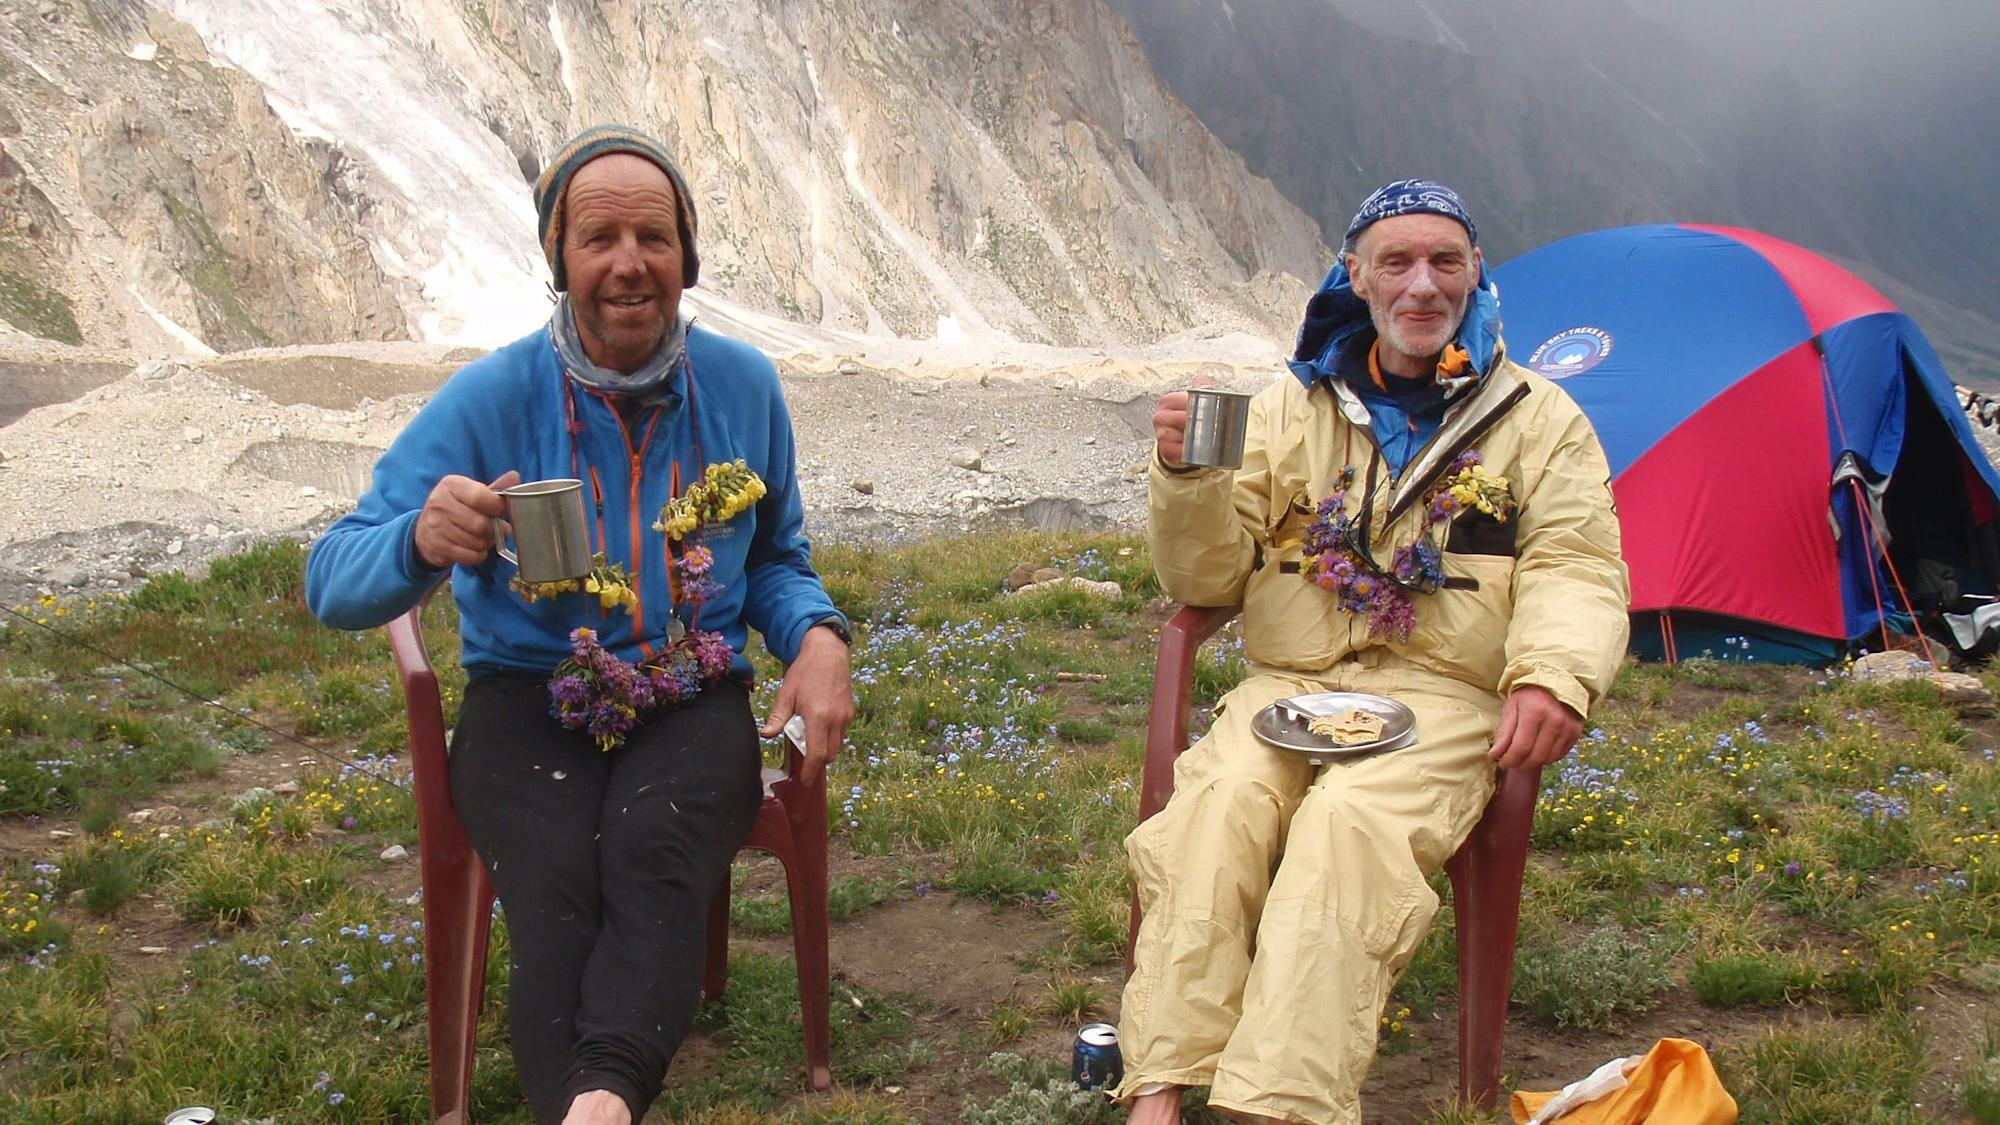 Scottish climber killed in avalanche on K2 'died doing what he loved the most'